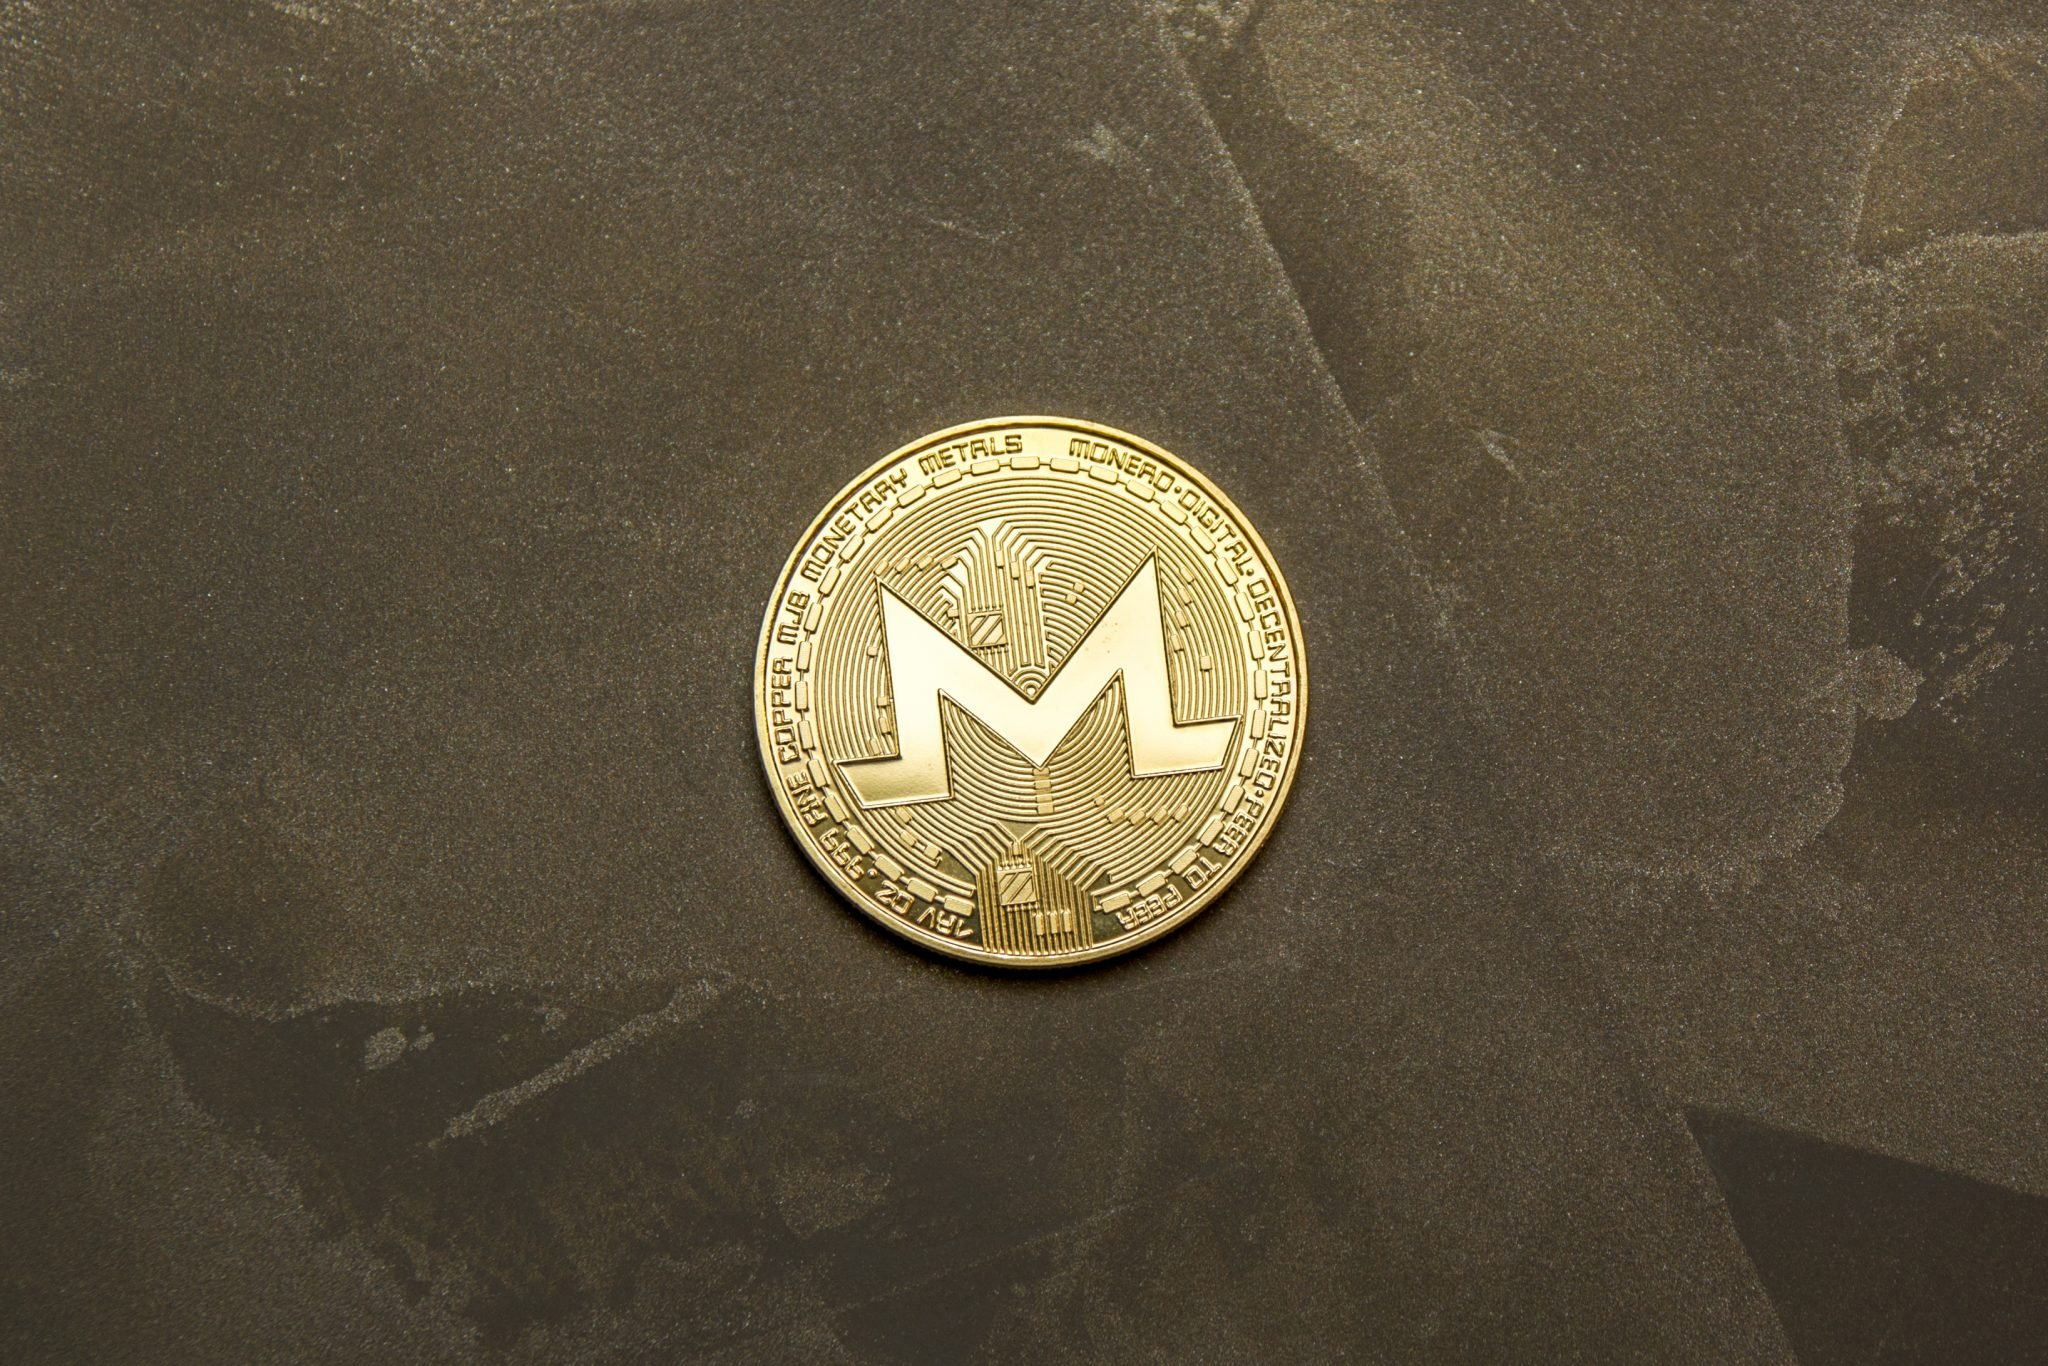 golden monero on background maded from decorative plaster